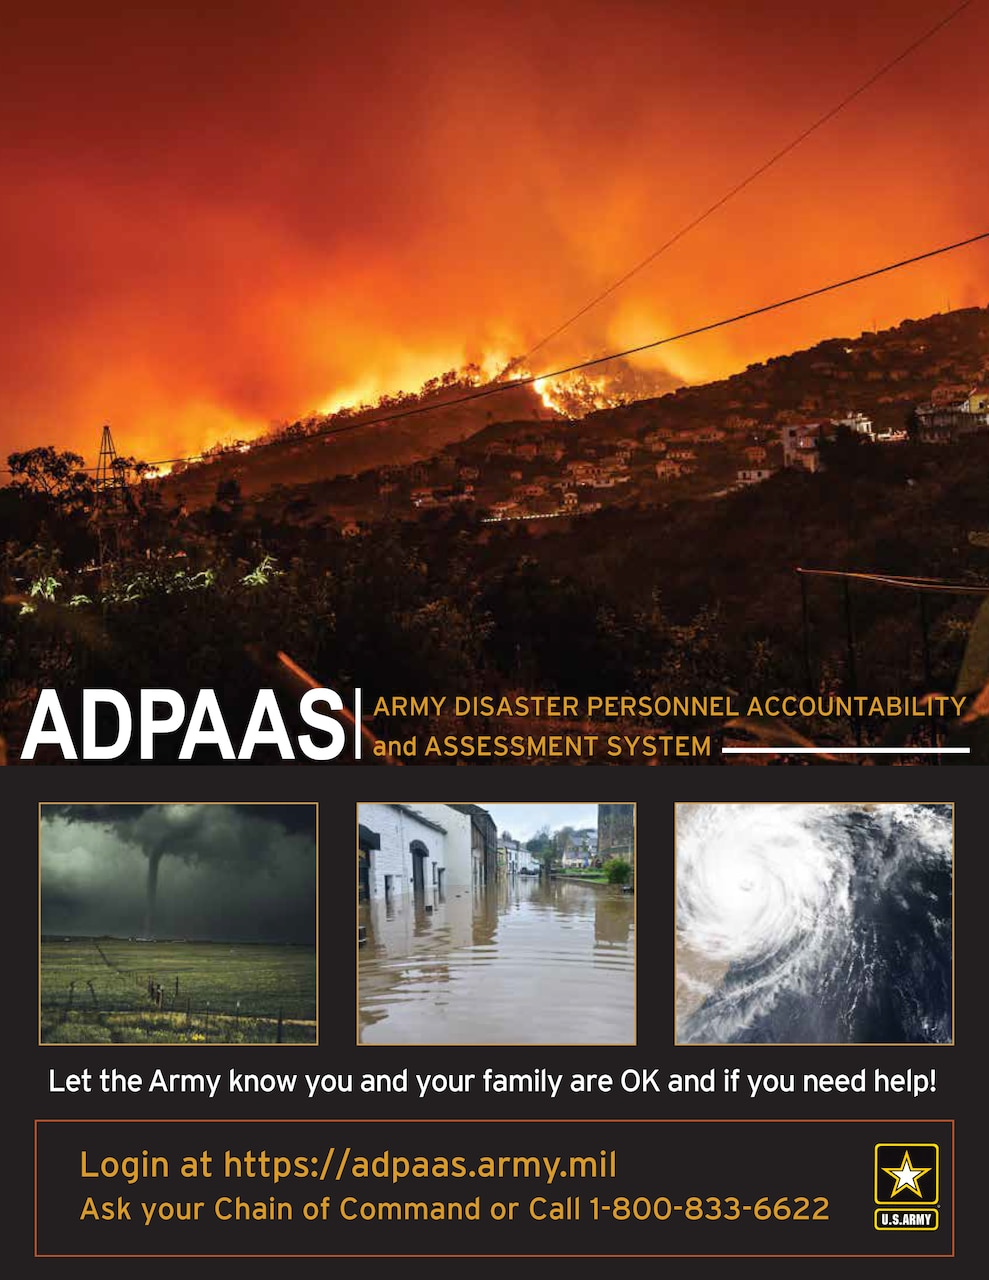 A poster includes images of disasters and information about the Army Disaster Personnel Accountability and Assessment System.